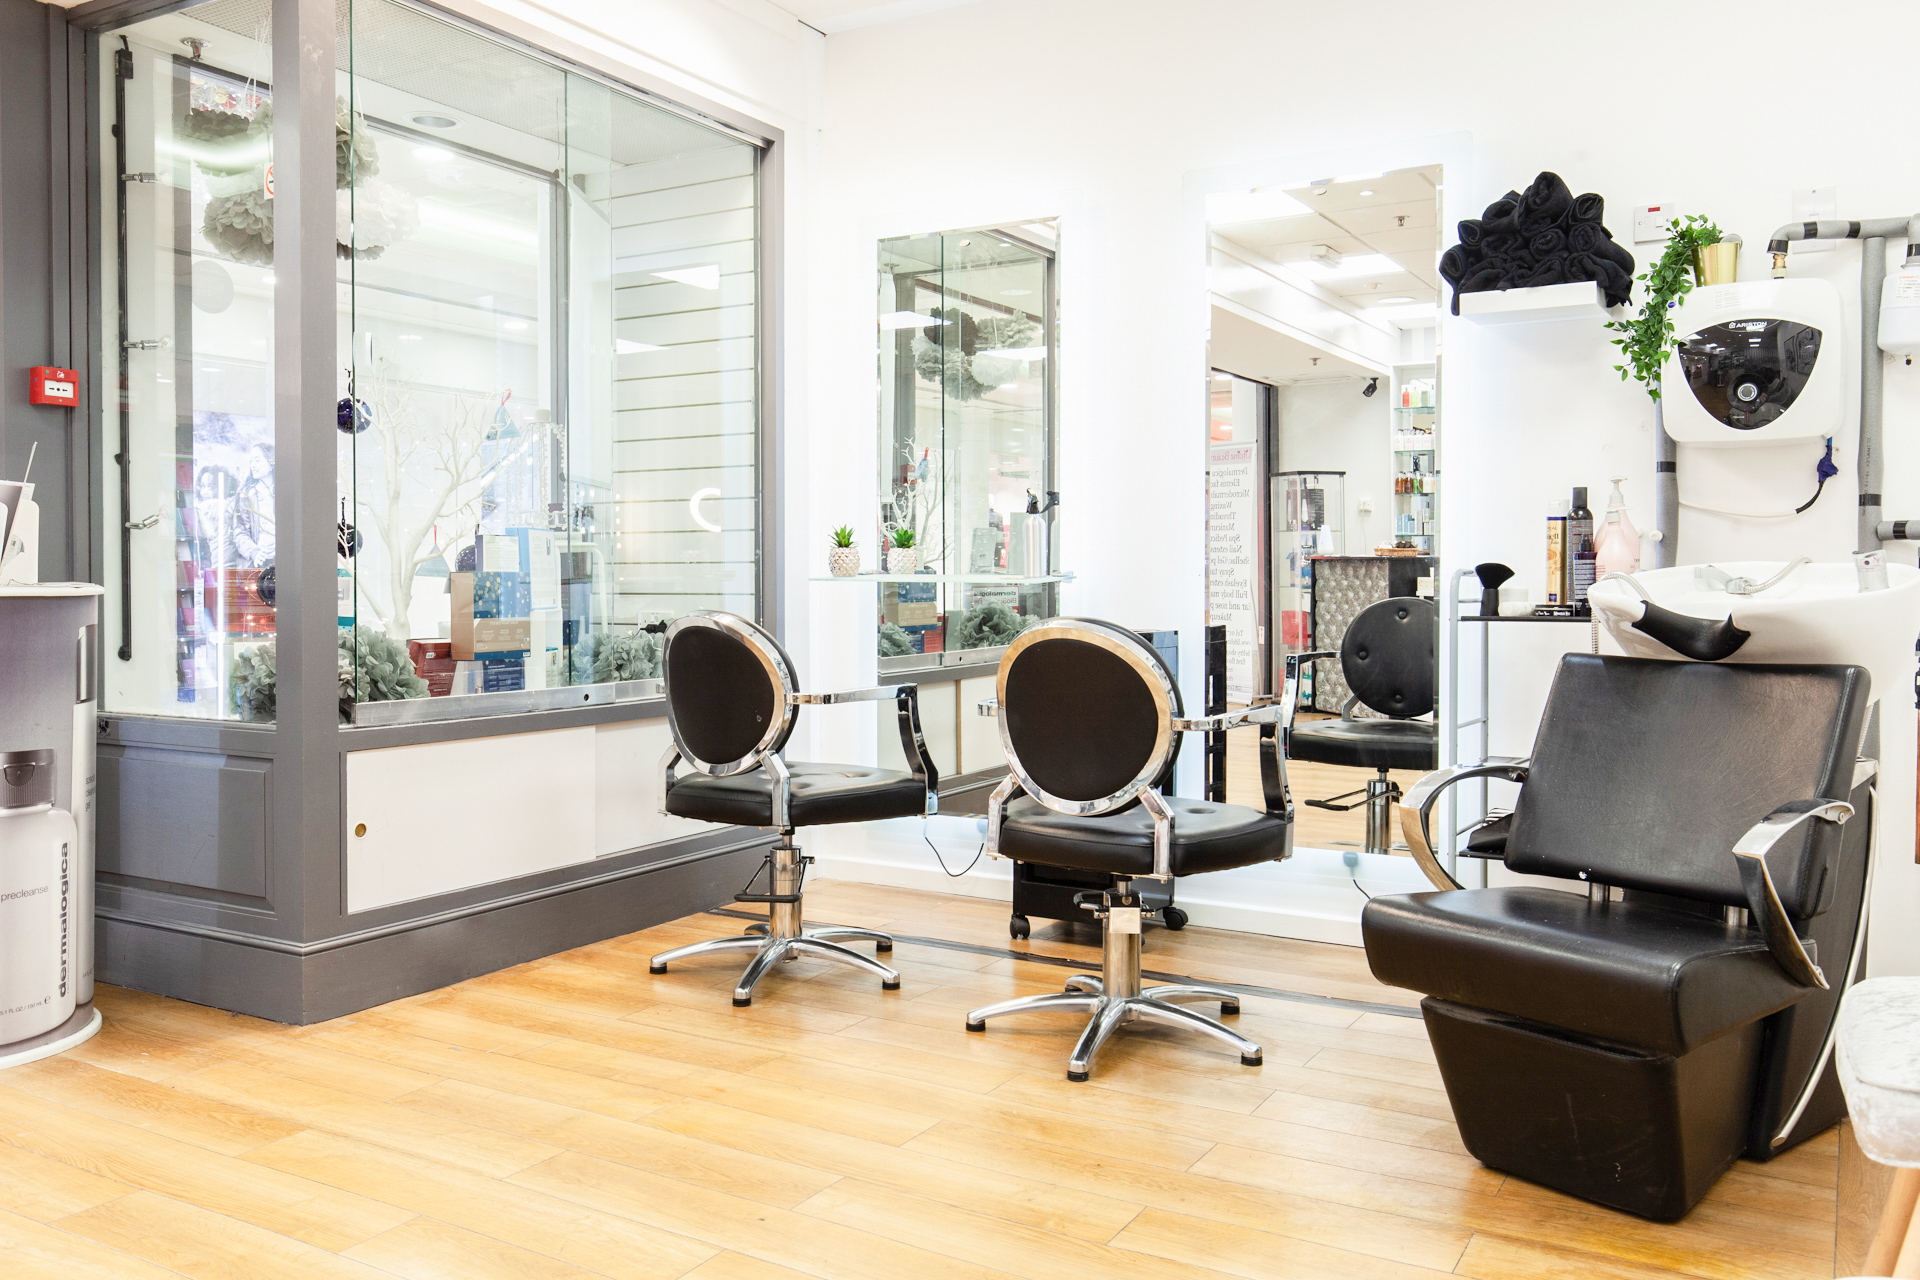 Lifeline Beauty Hair and Makeup in Redhill